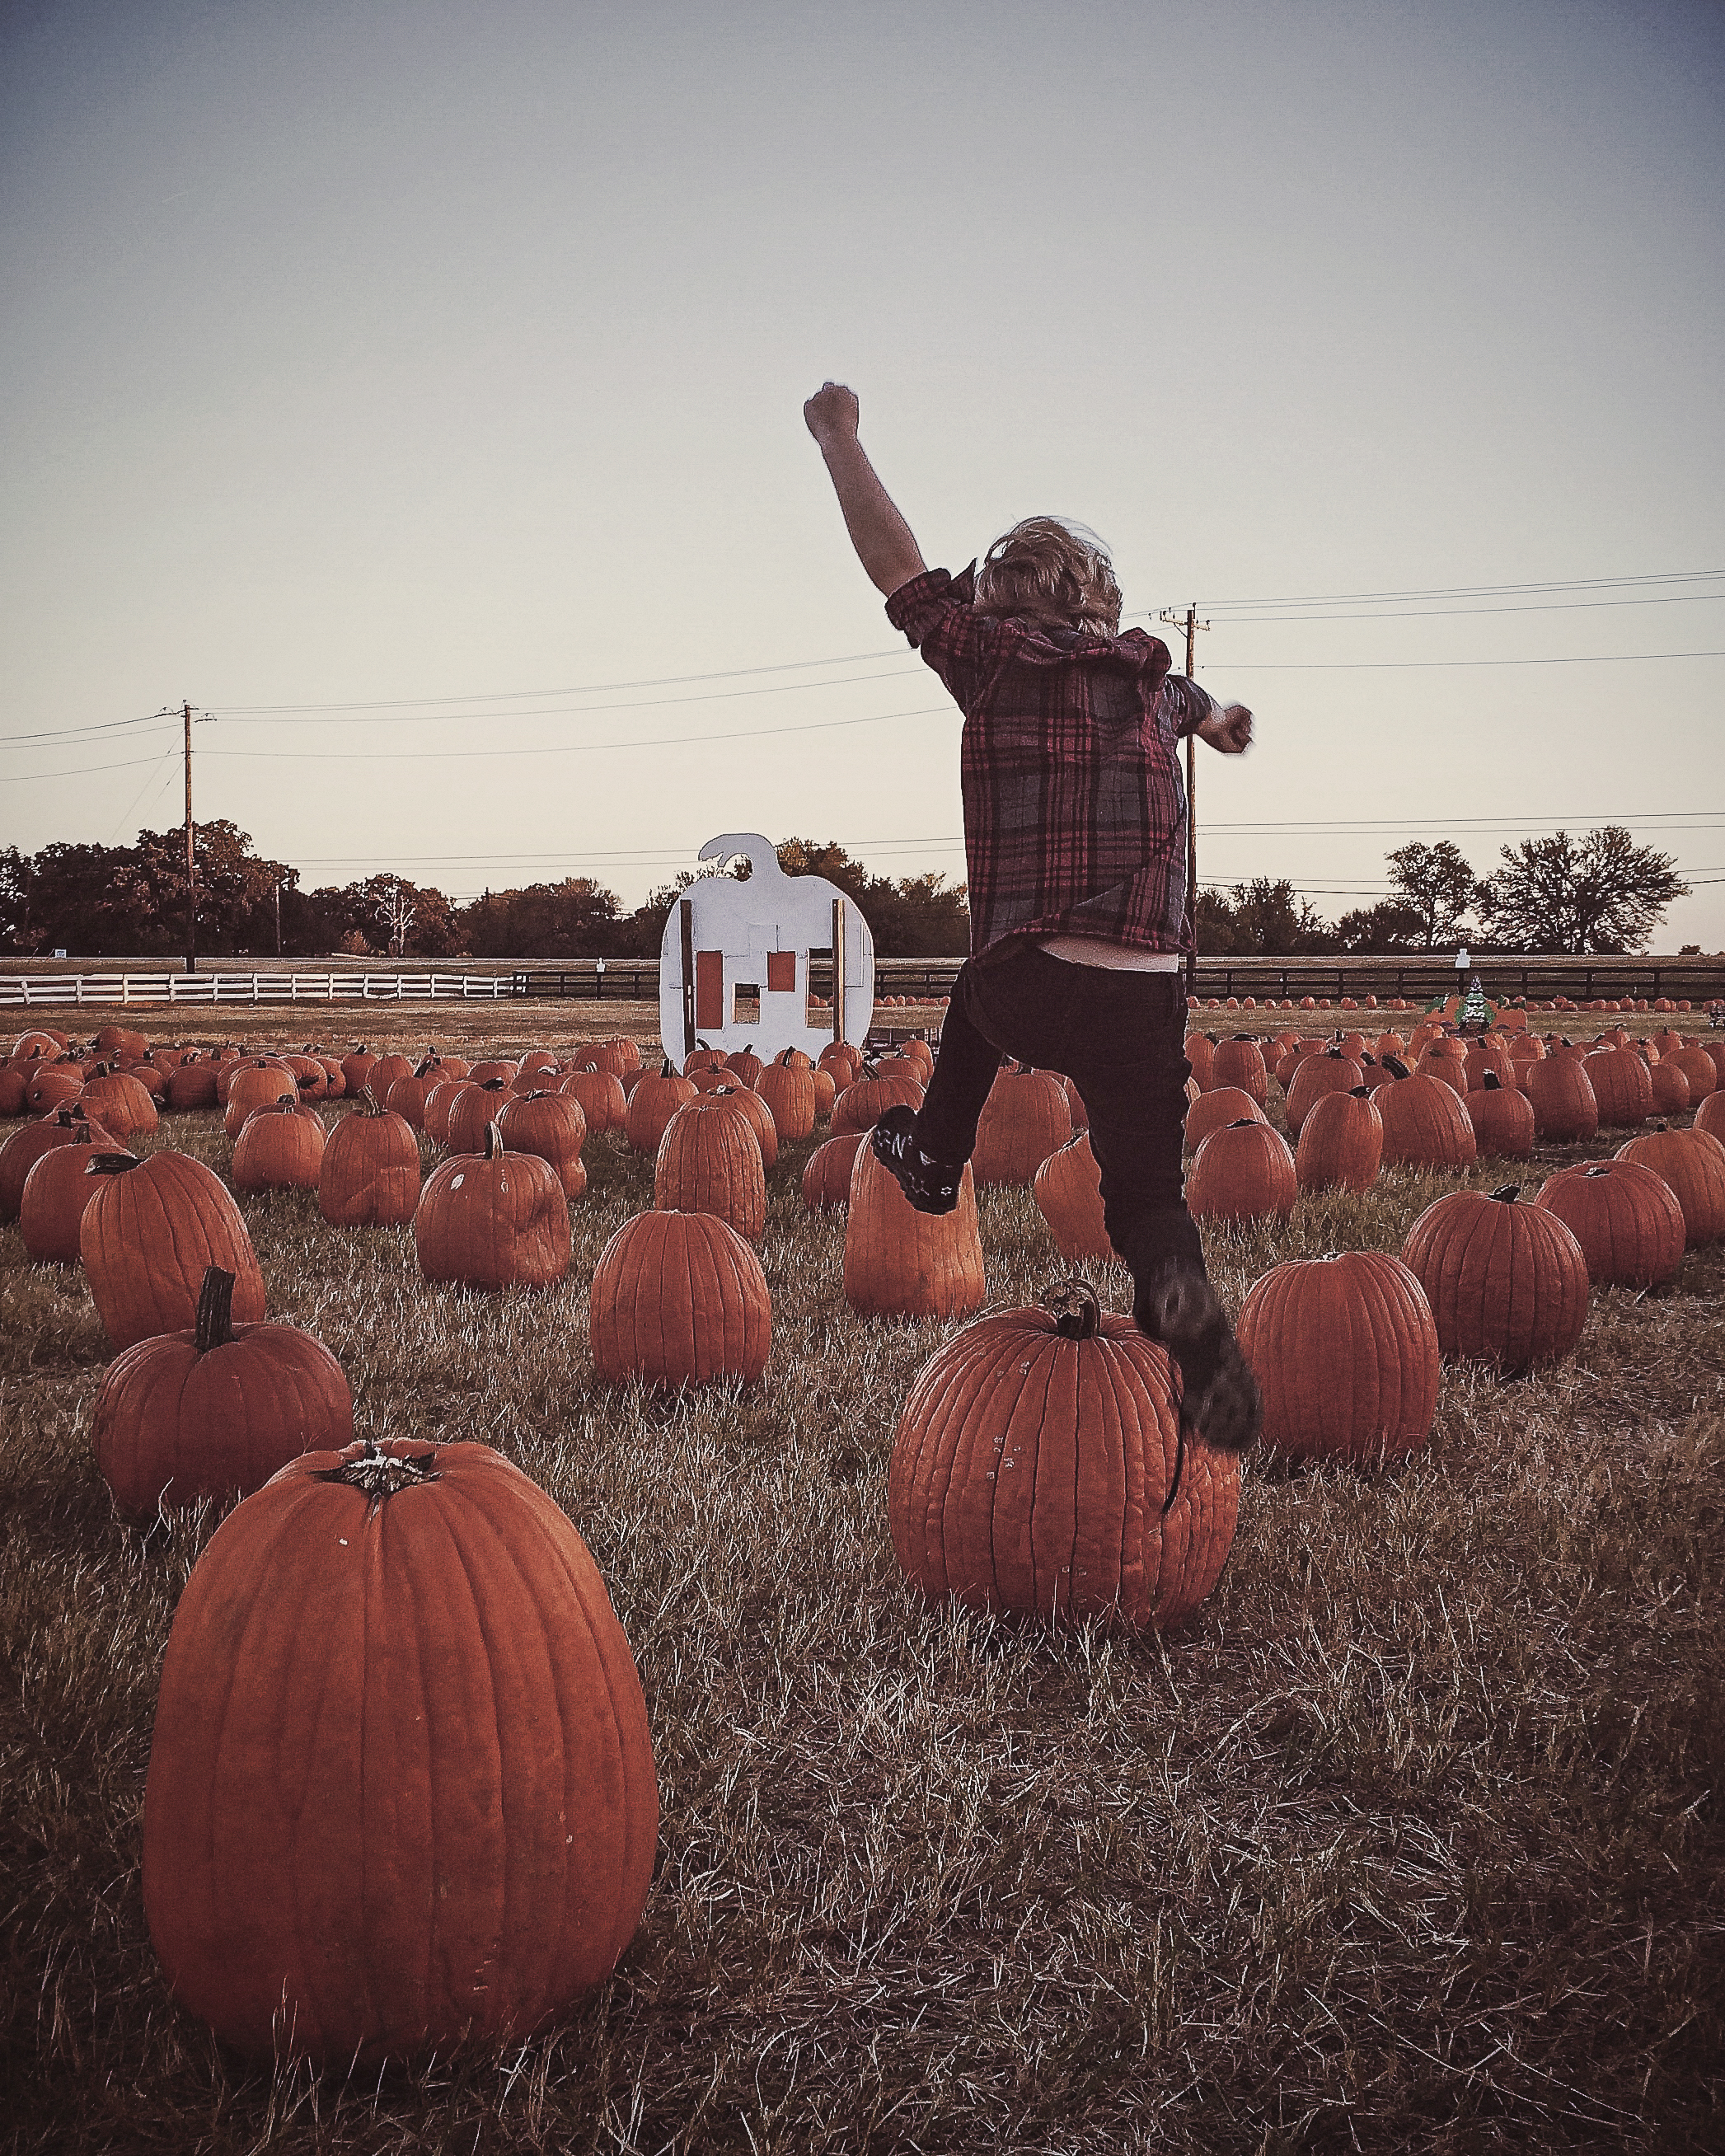 Have y'all ever checked out the gigantic pumpkin patch (complete with hay maze, obstacle courses and much more) on Cross Timbers Rd. in Flower Mound? It's awesome and you only have to pay $5 to park for as much fun as you can take in for a day.